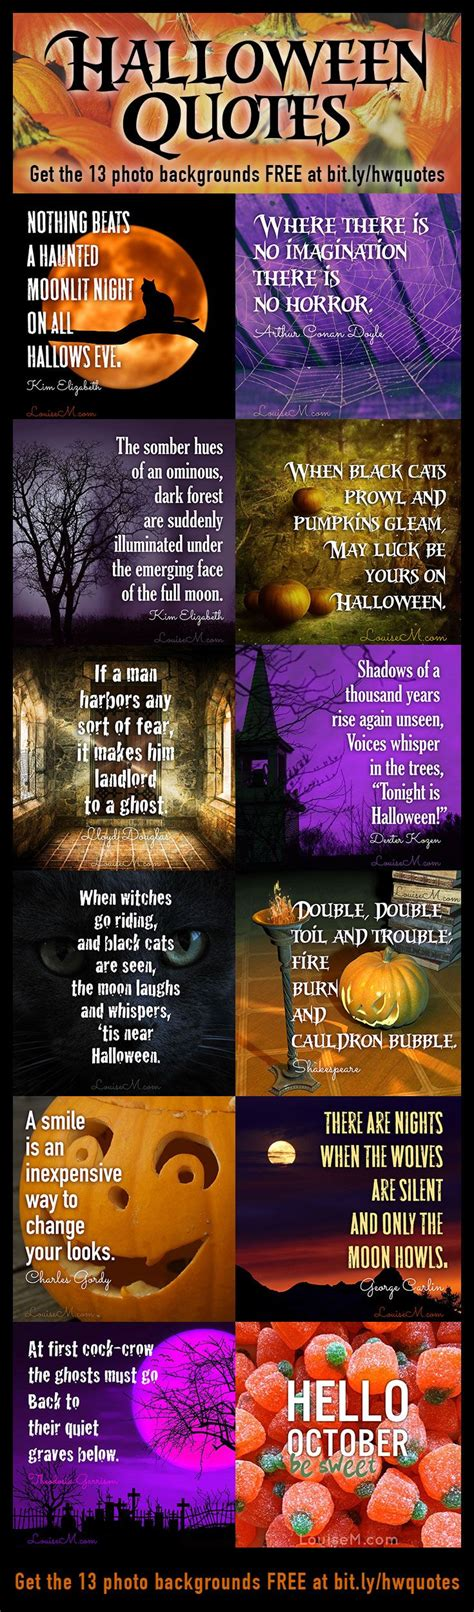 Very Fresh And Spooky Memes - best 25 halloween quotes ideas on pinterest halloween captions halloween sayings and